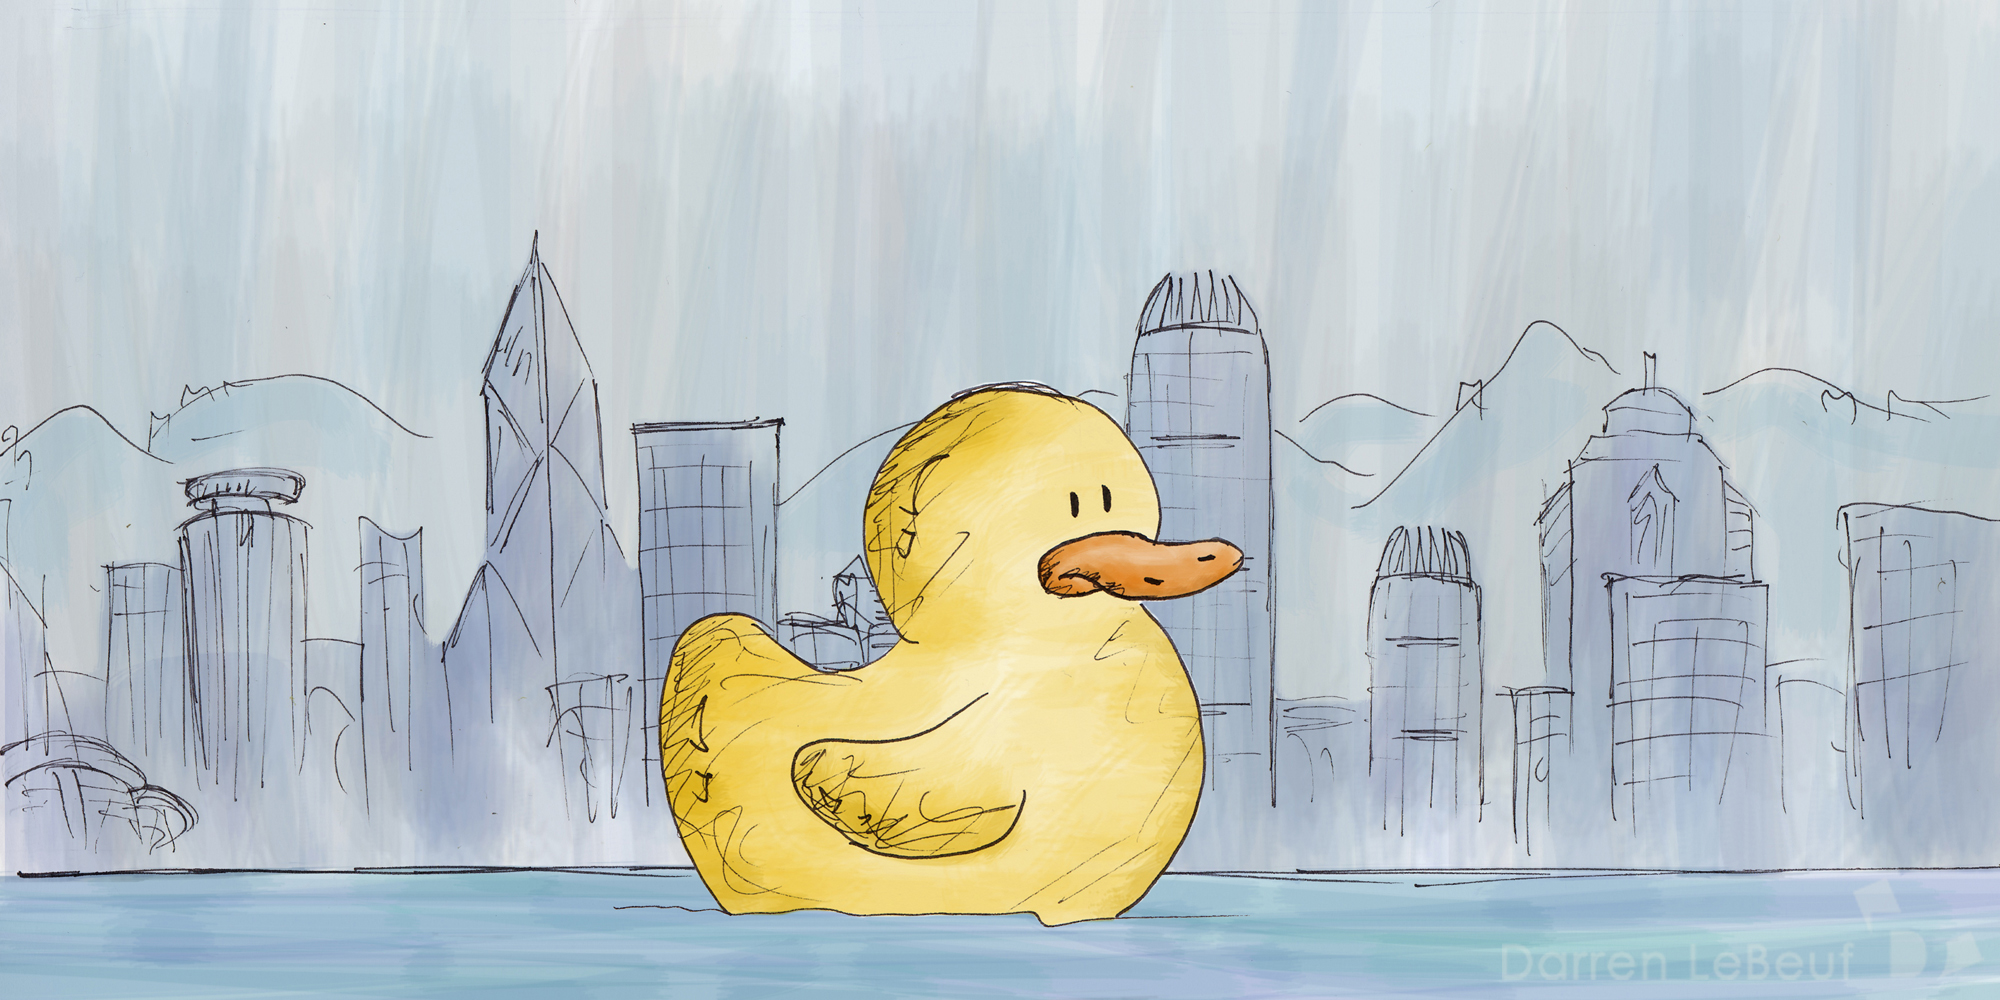 Hong Kong Rubber Duck - as seen by the Land of Le Beef, by Darren Lebeuf